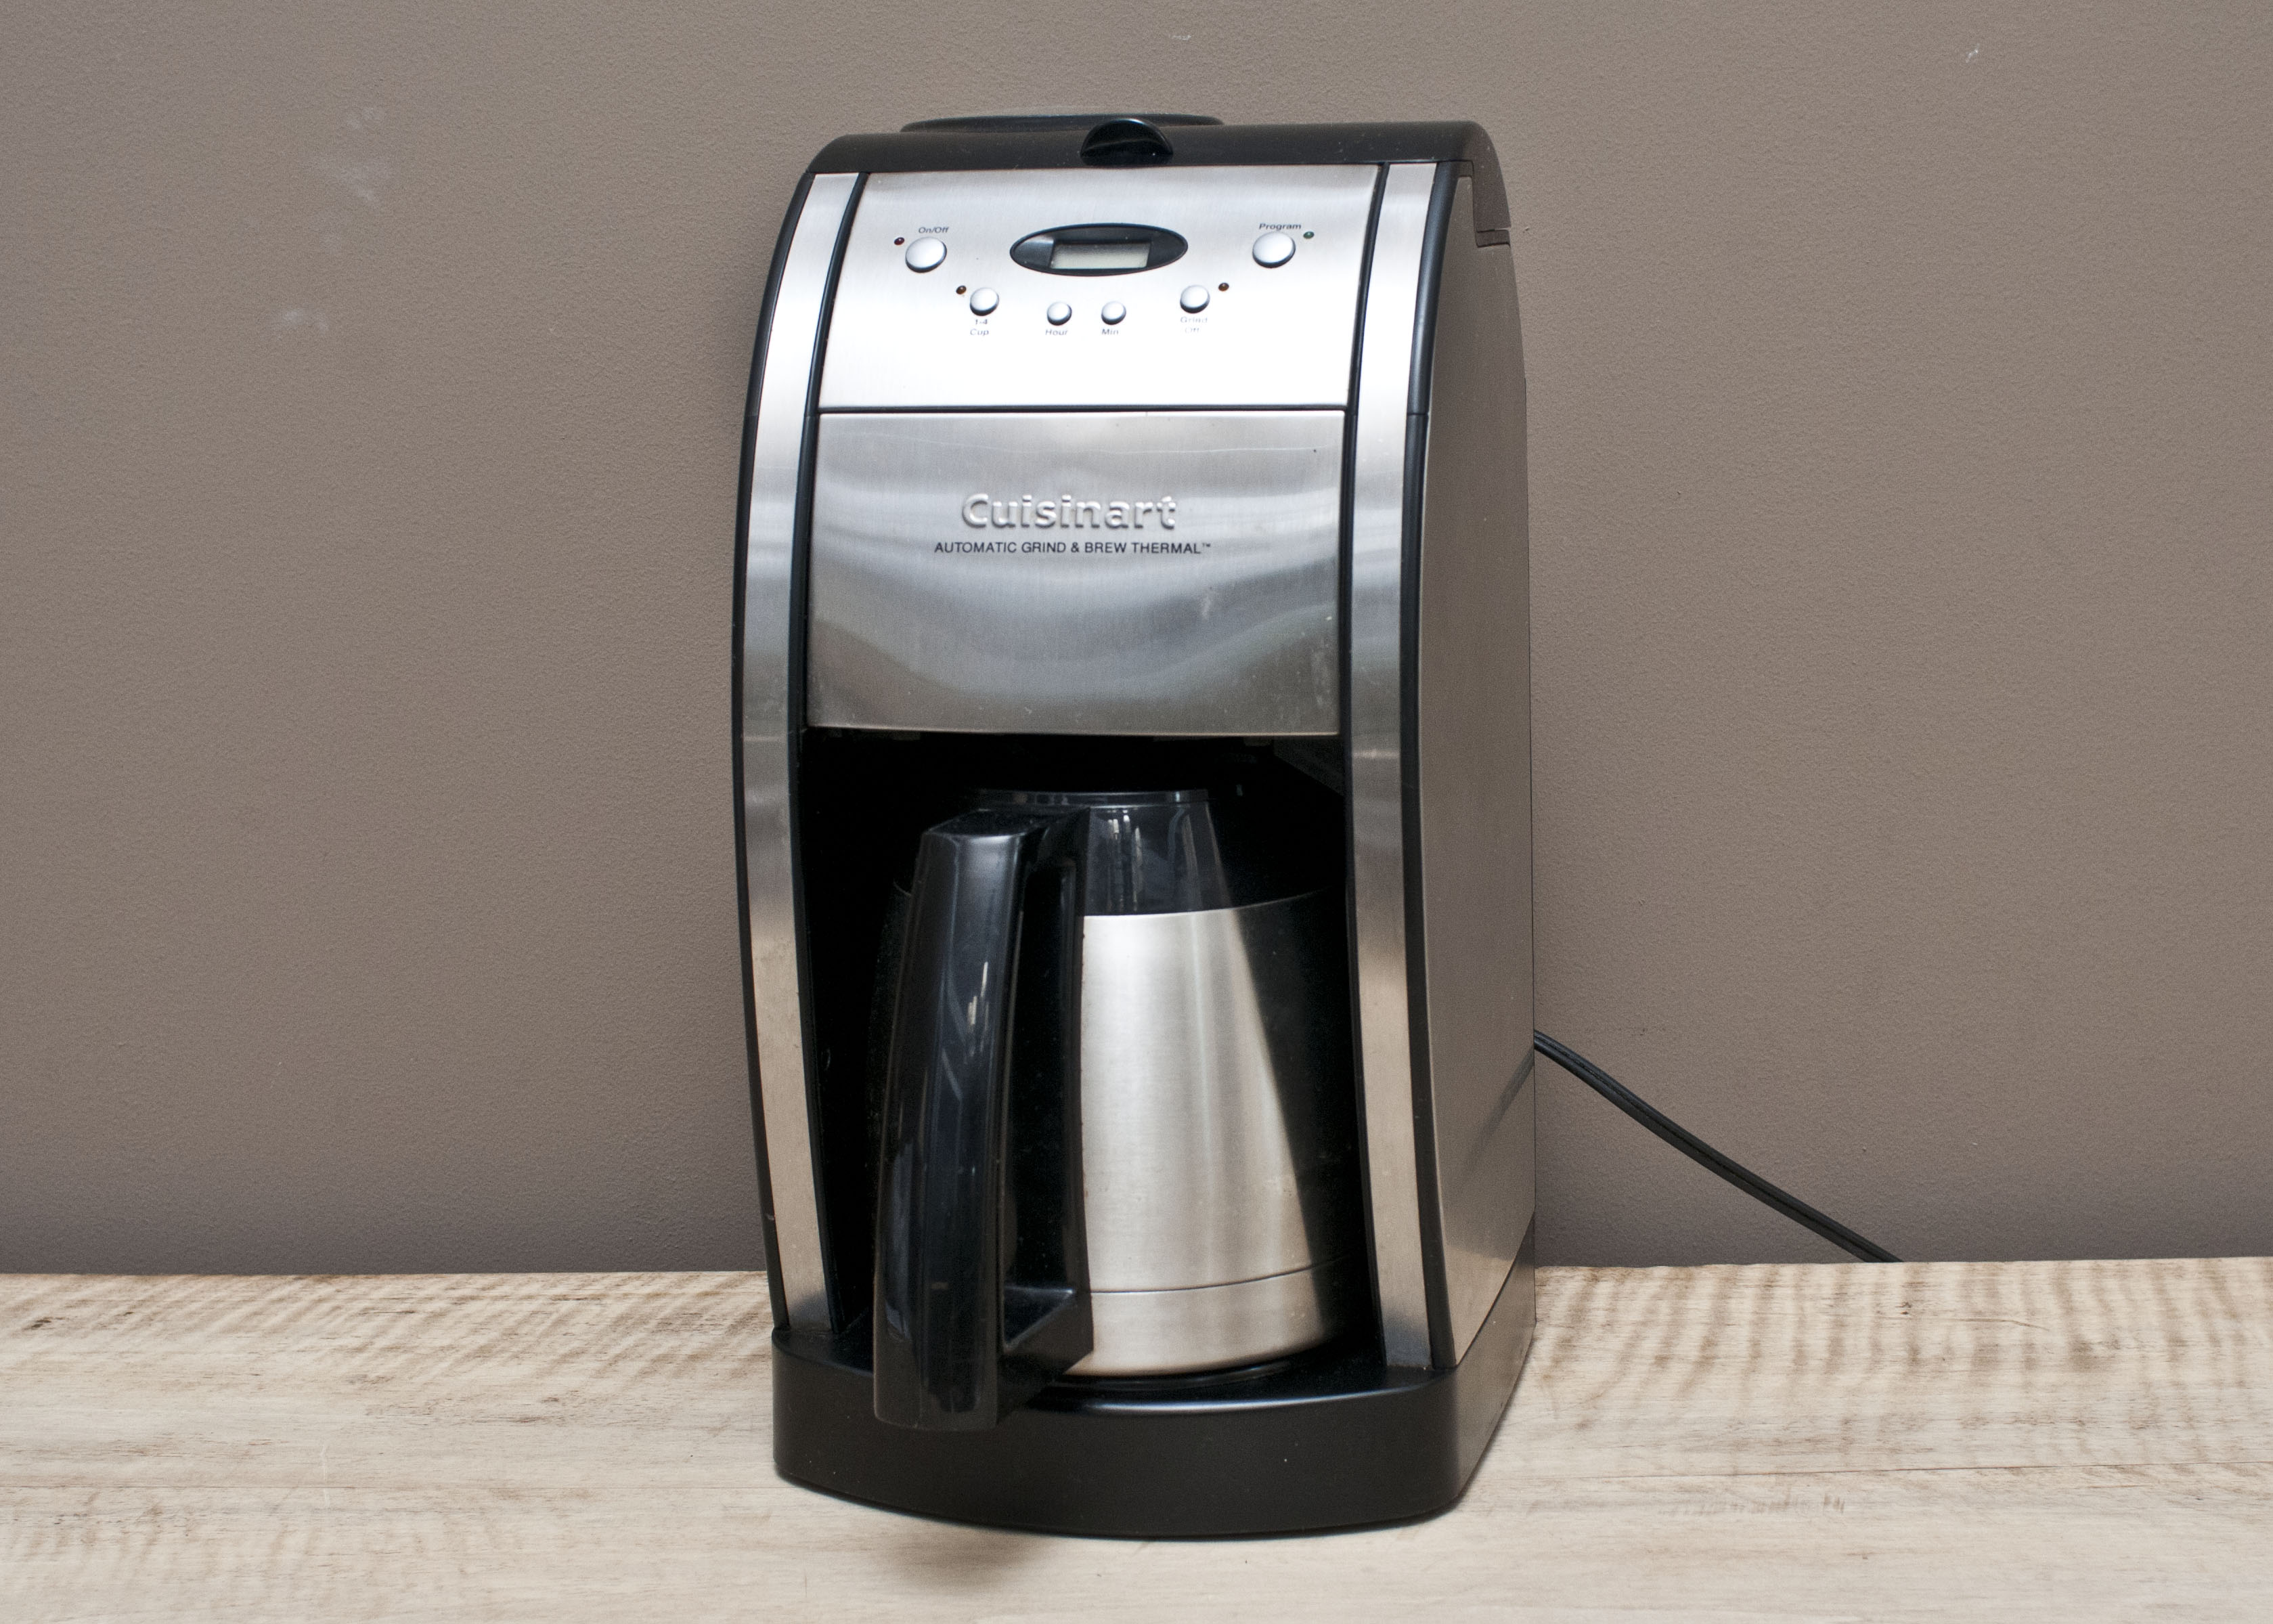 Cuisinart Automatic GrindBrew Thermal EBTH